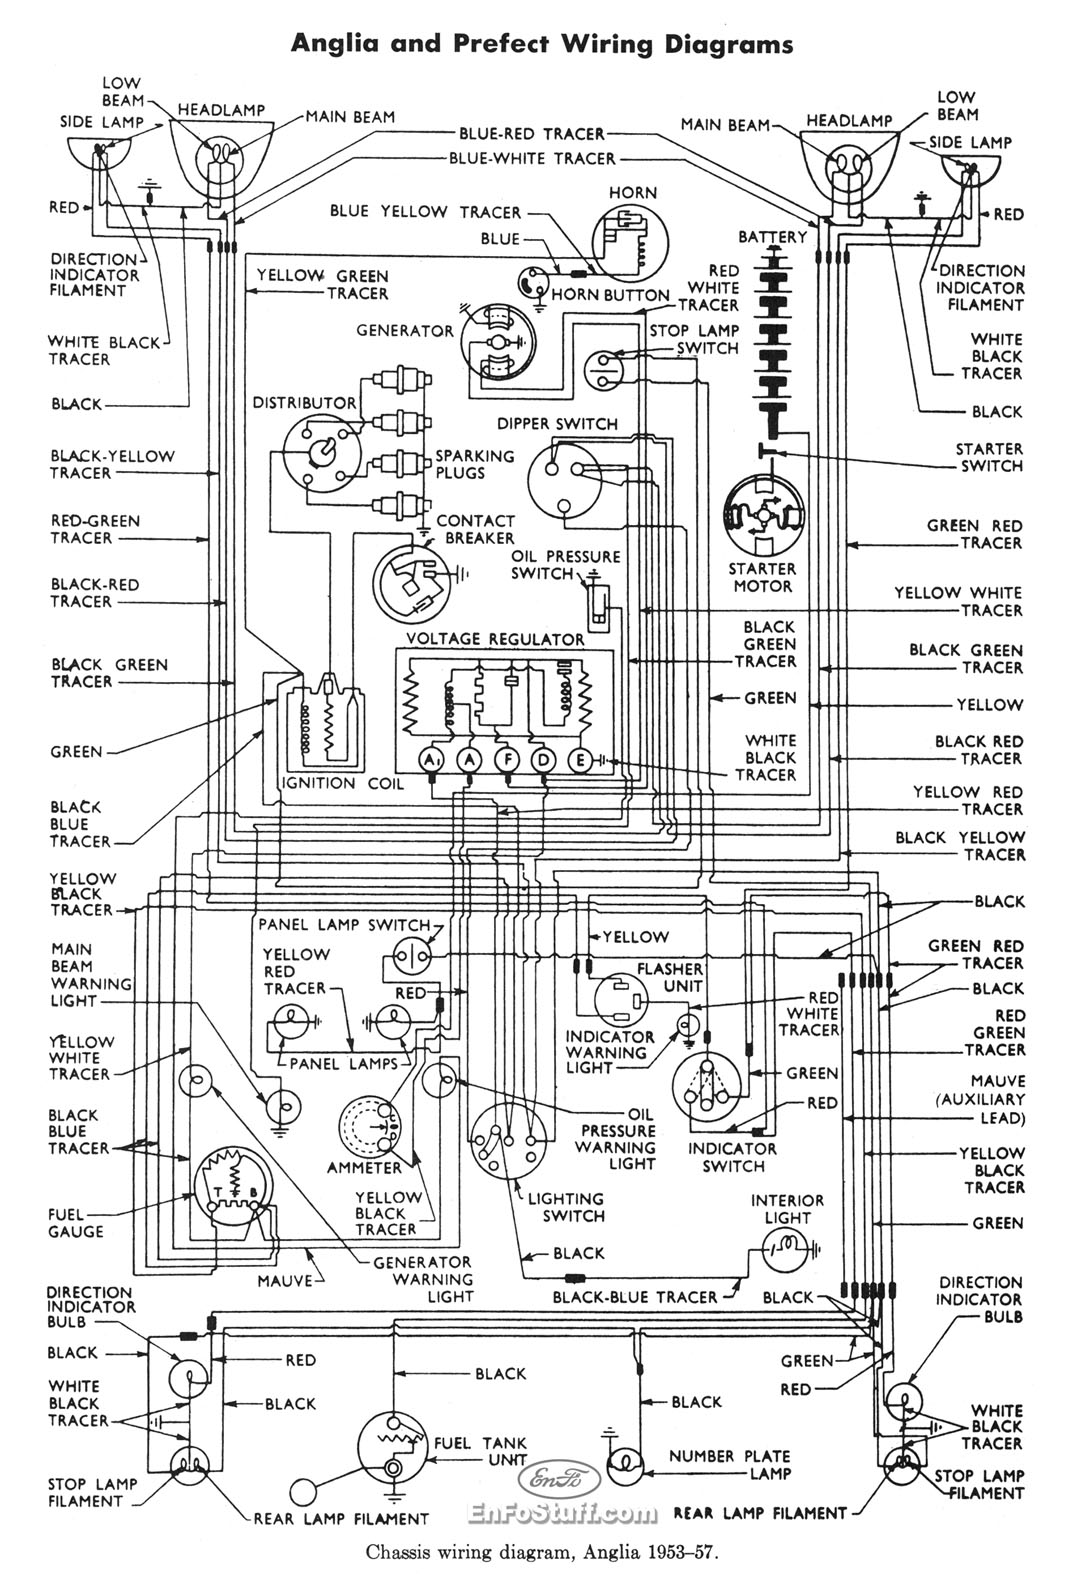 appealing old ford tractor wiring diagram ideas best image wiring ford 600 tractor wiring diagram 5600 ford tractor wiring diagram wiring source \u2022